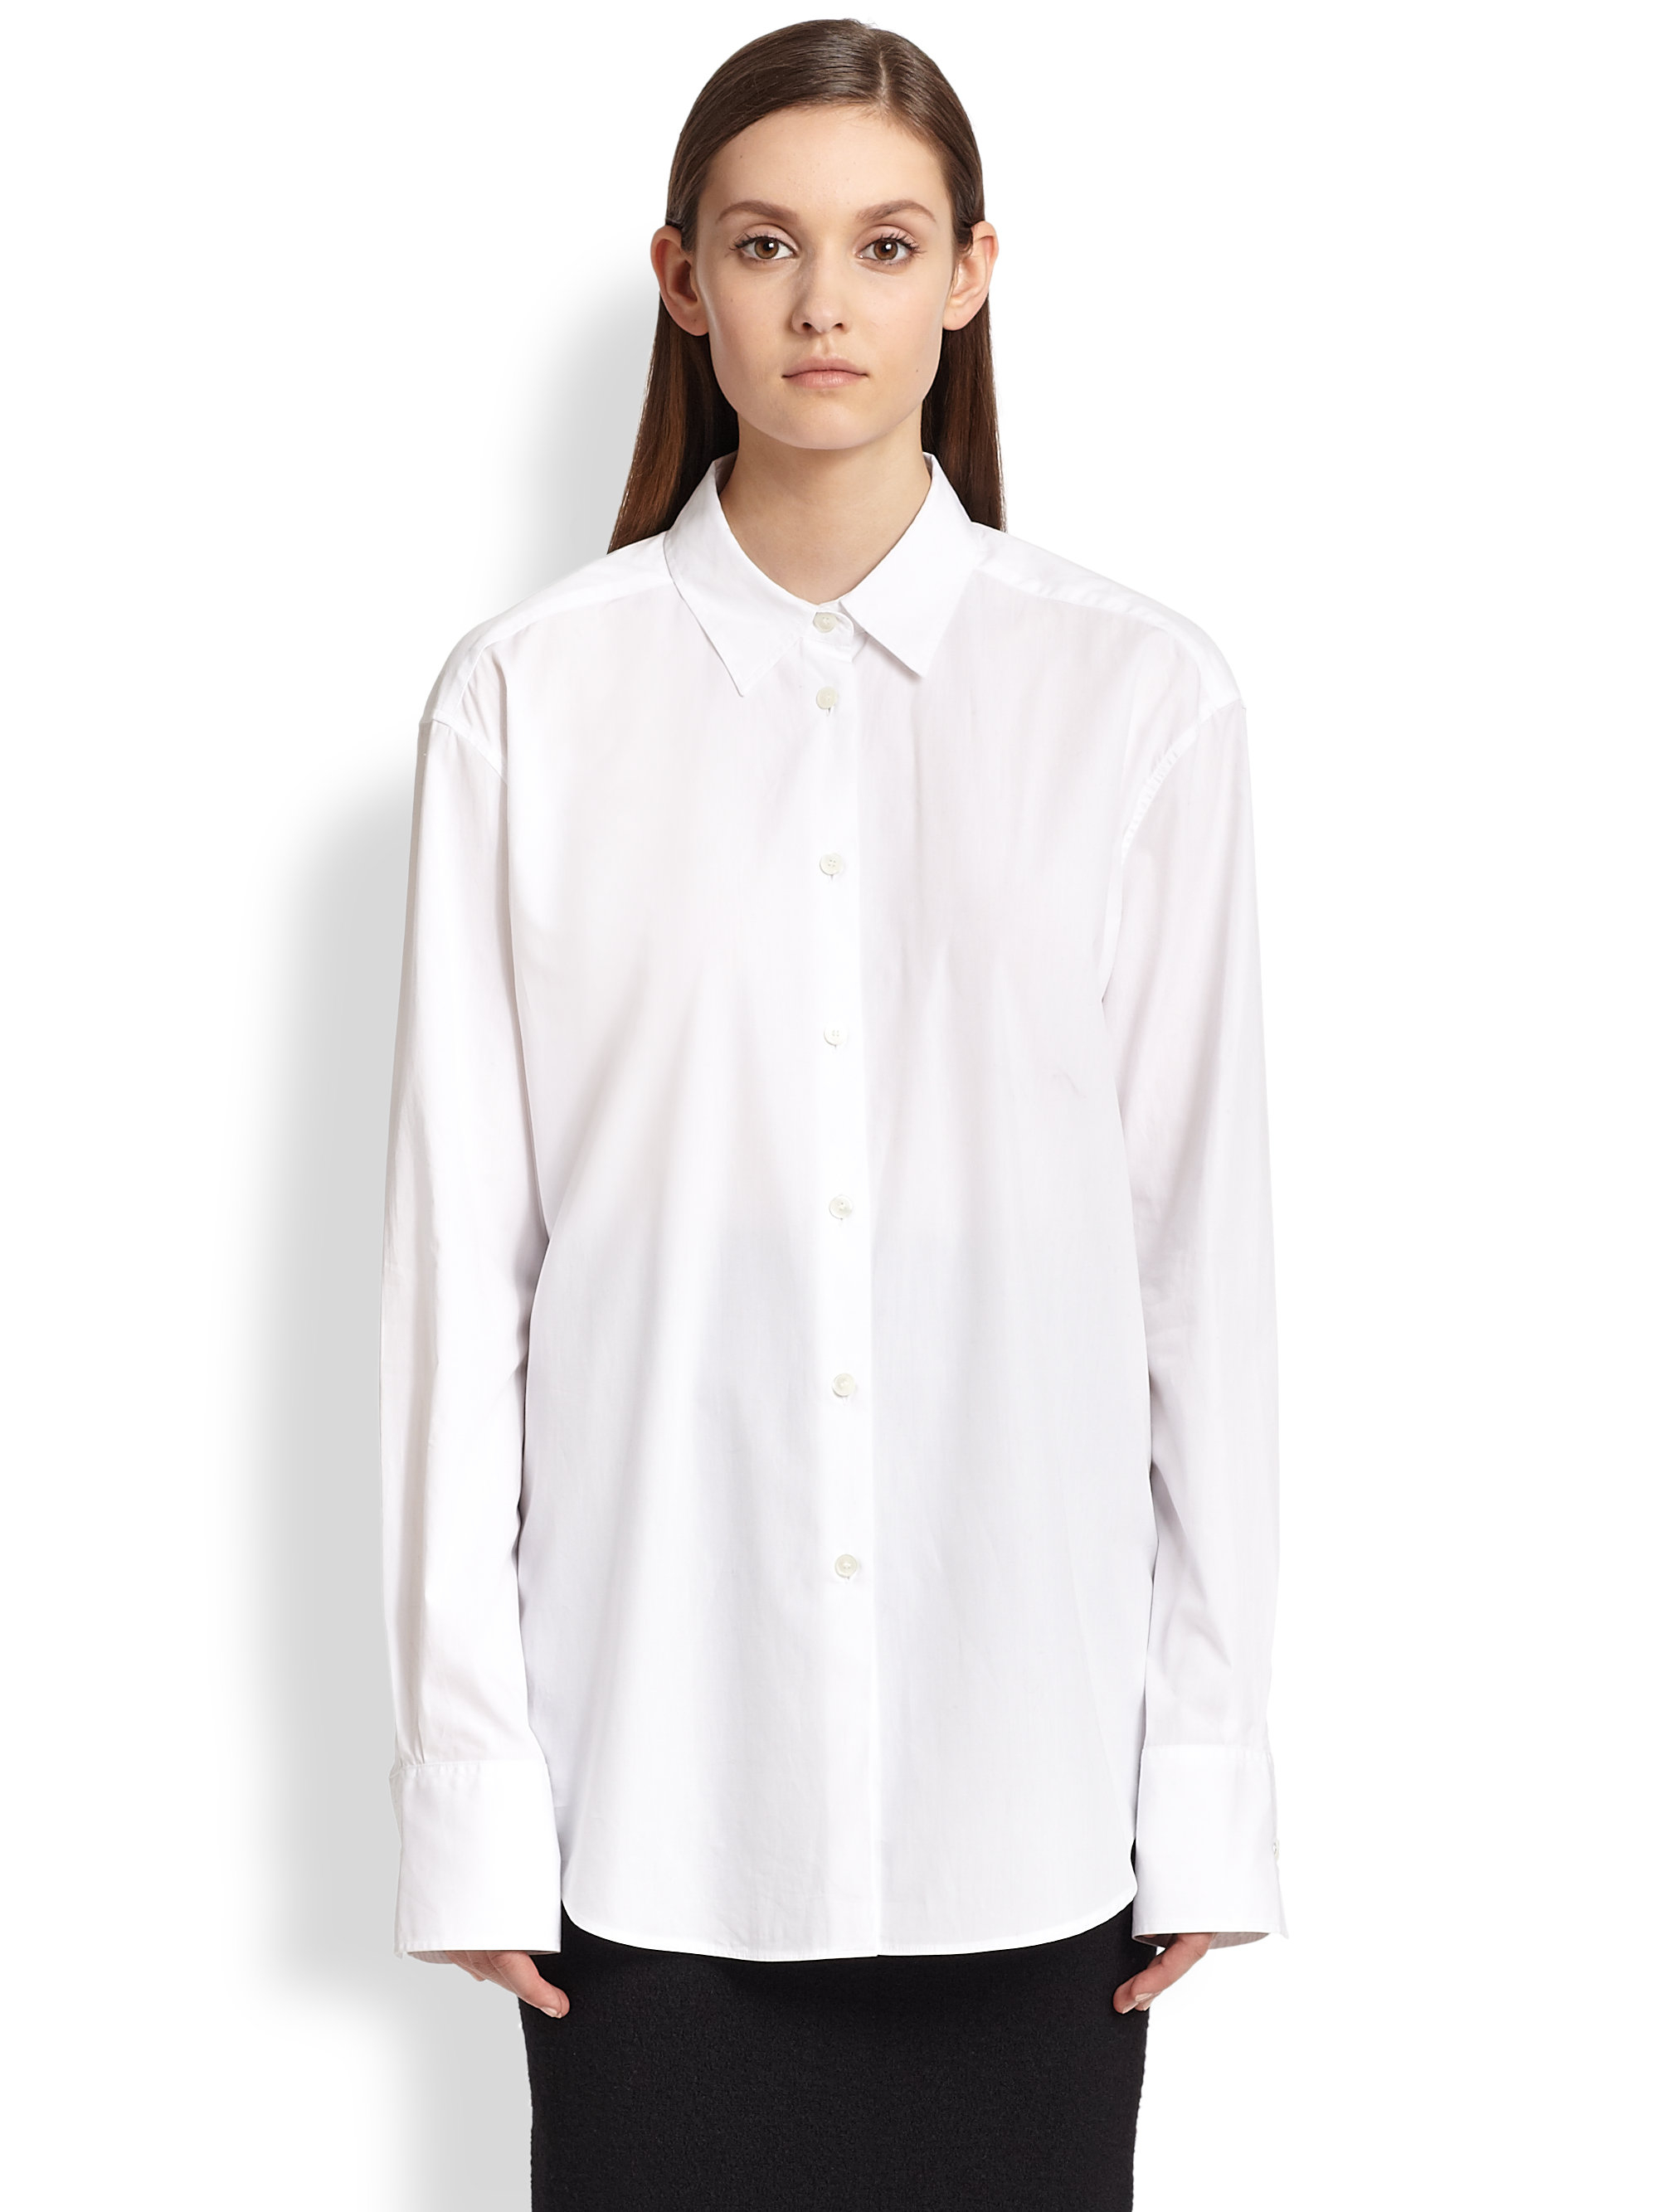 Acne studios oversized cotton poplin shirt in white lyst for What is a poplin shirt